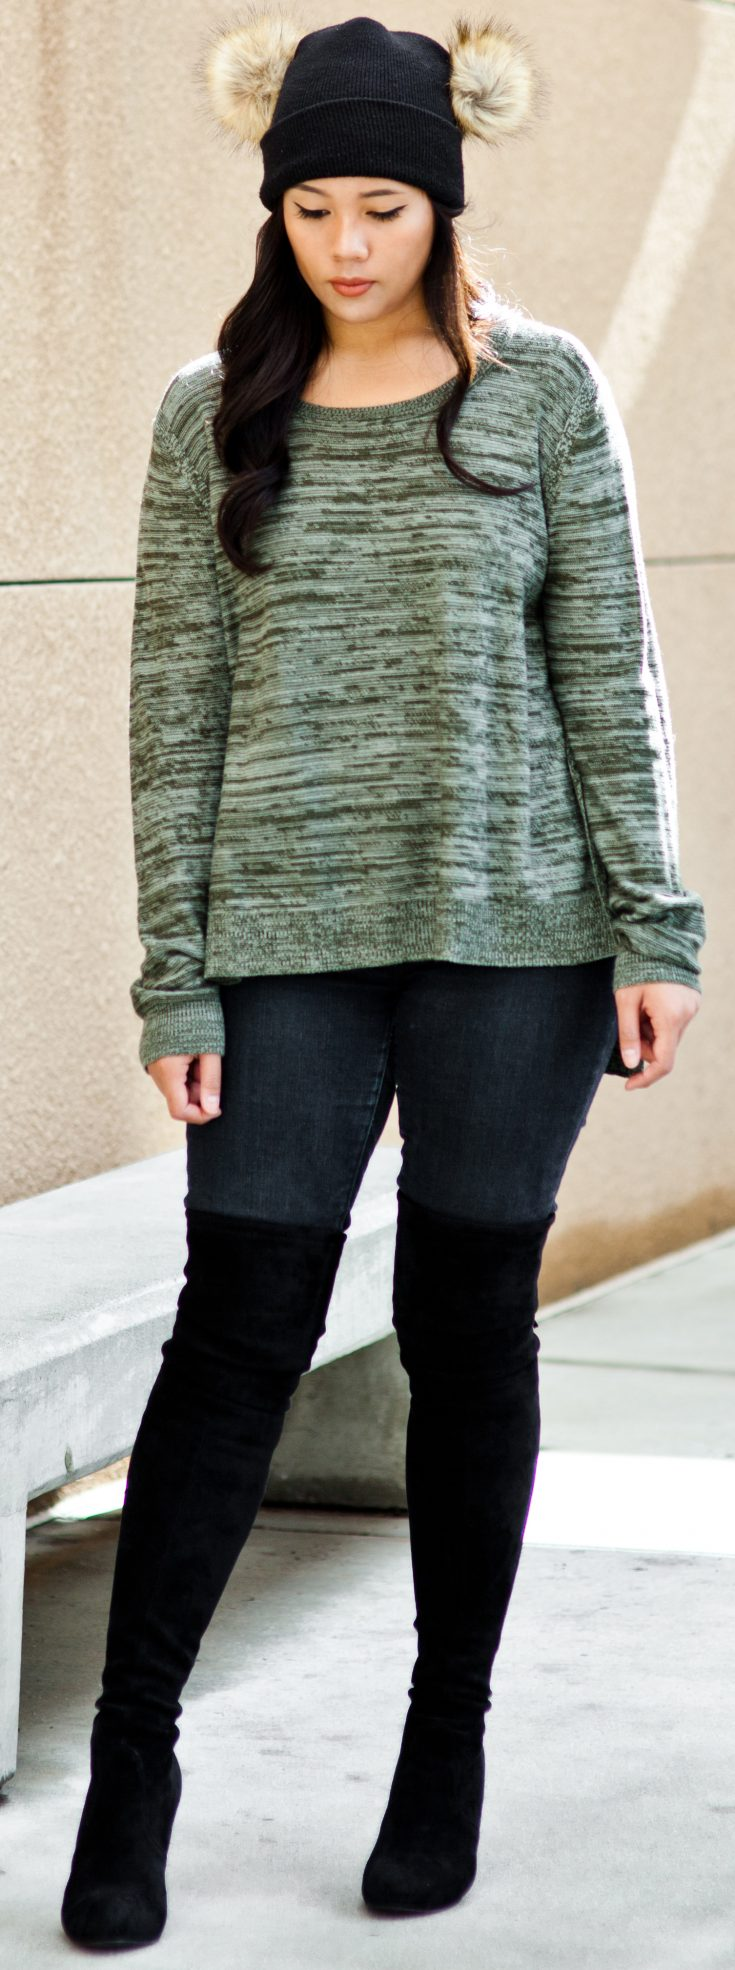 Get the look: Sweater: $10.00, Jeans: $36.99, Over-the-knee Boots: $99, Backpack: $37.99 - THE BALLER ON AB UDGET